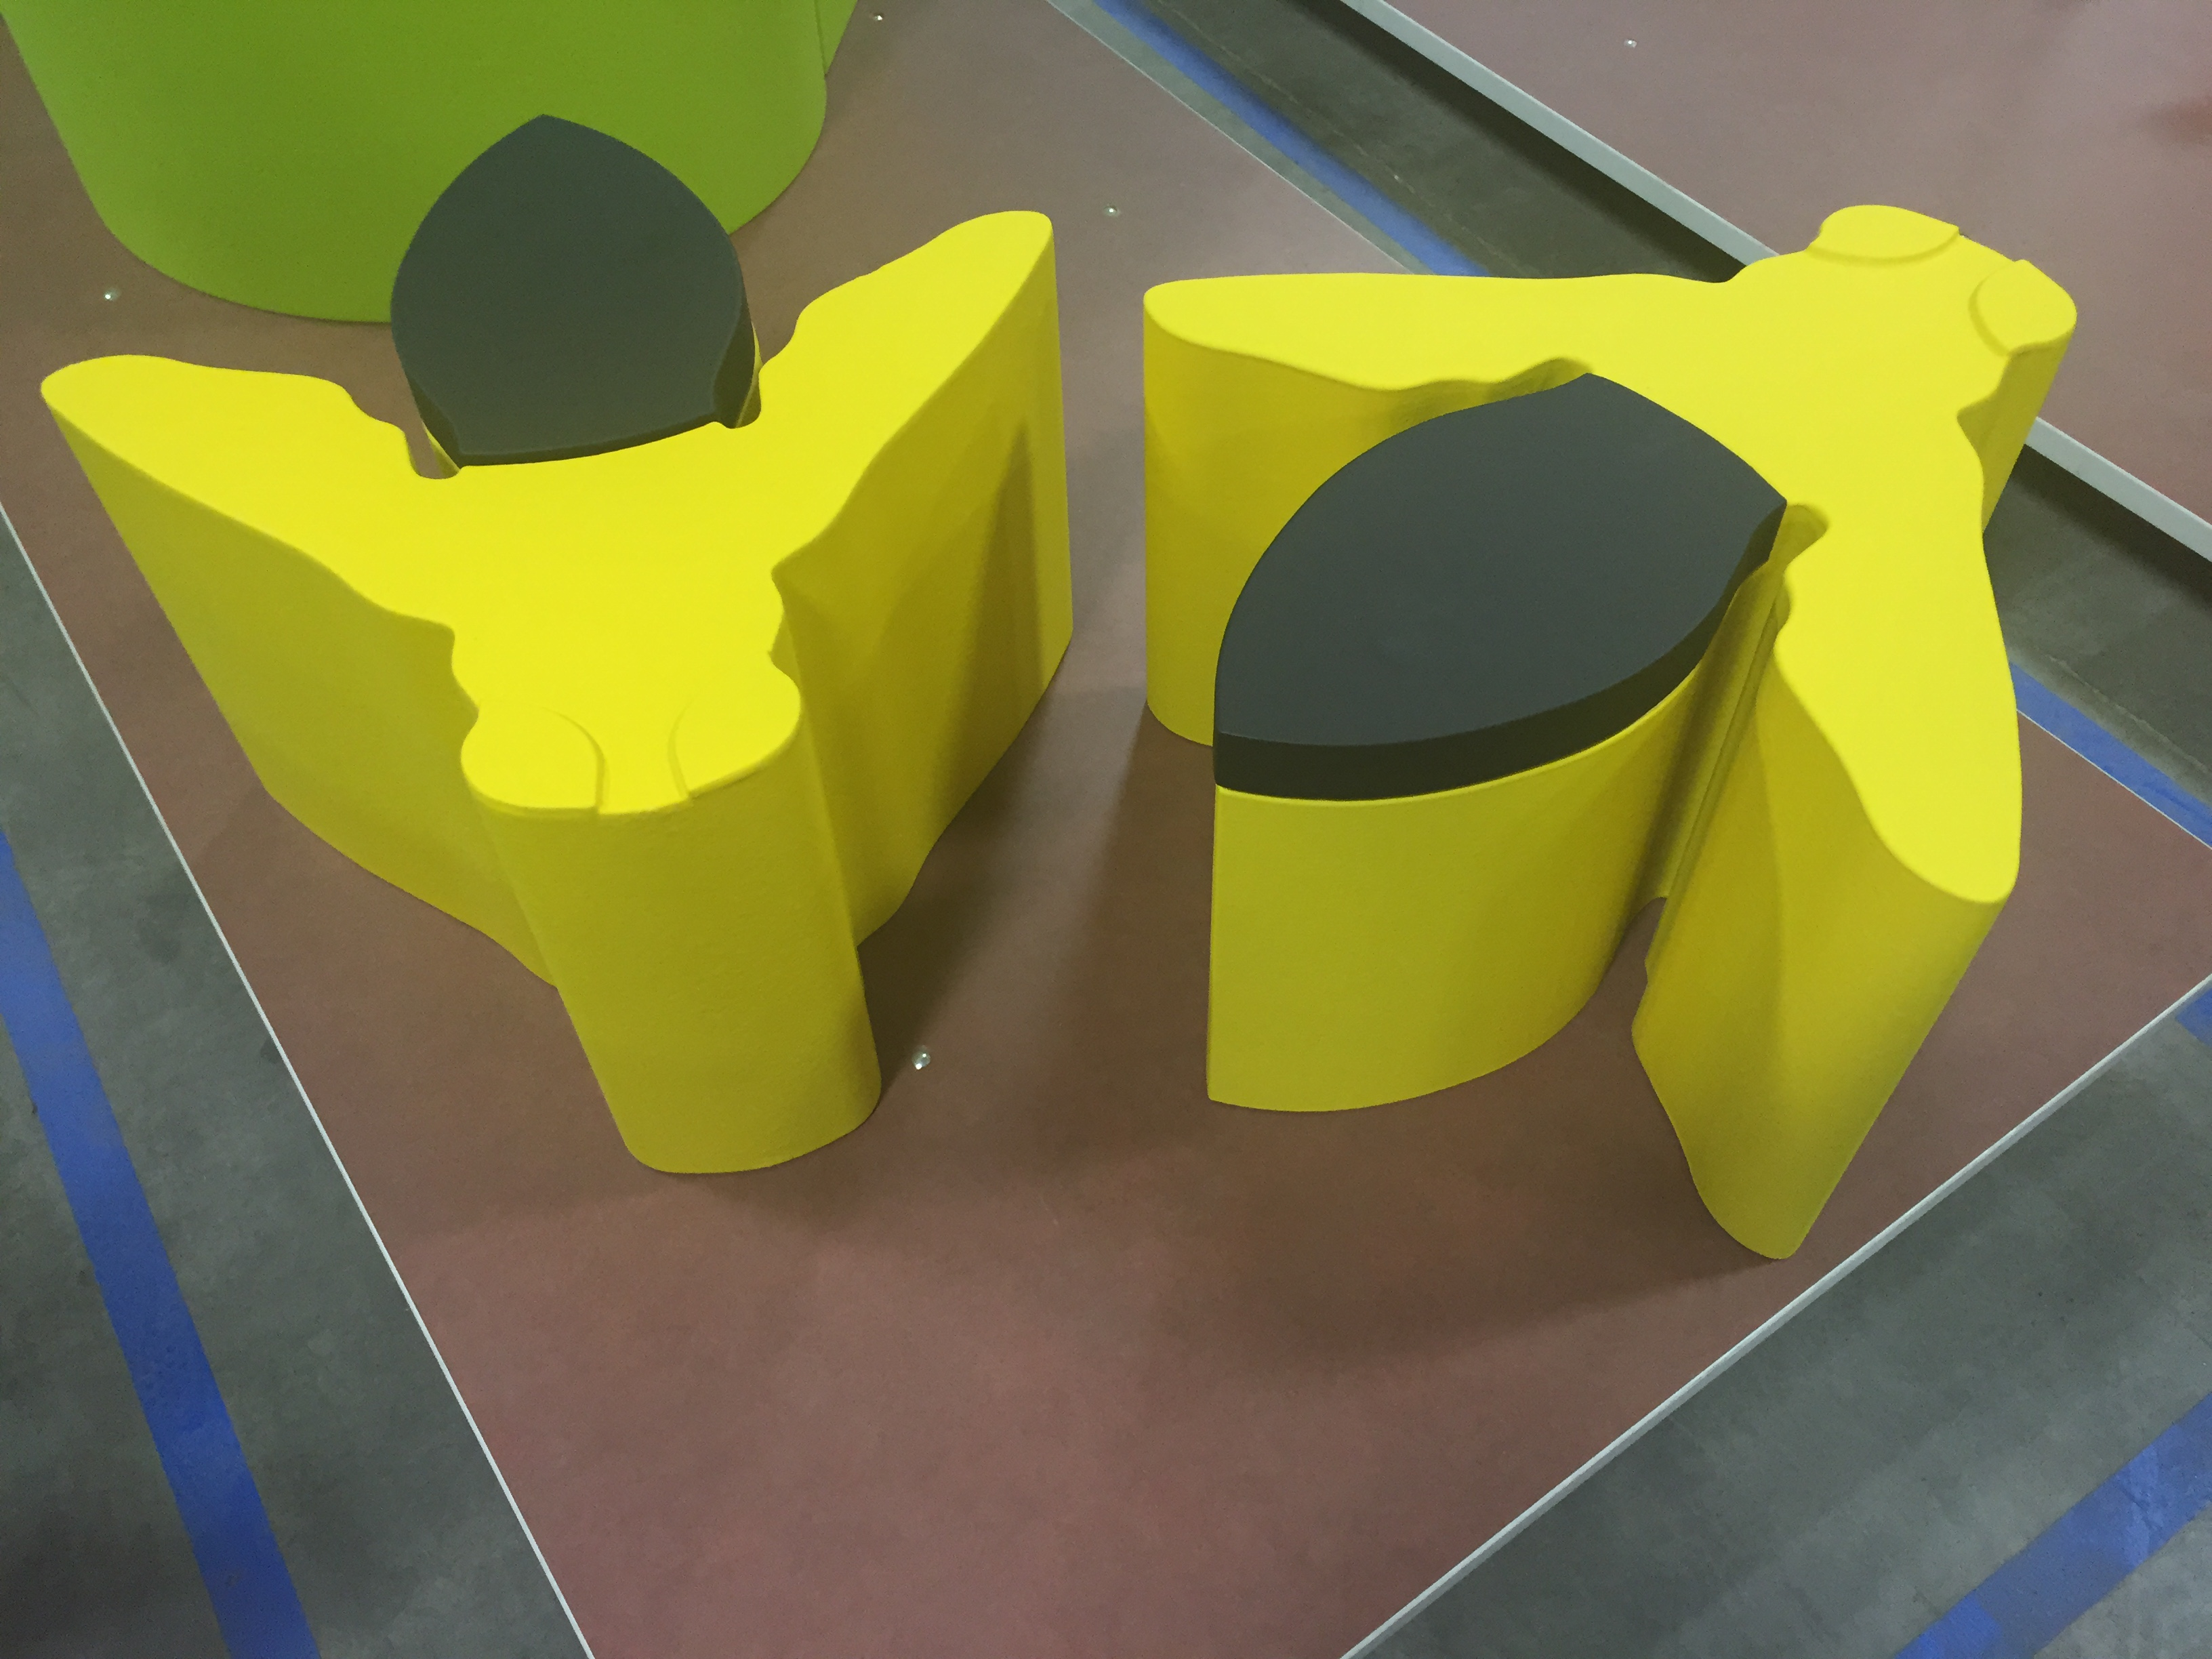 Feek coated foam seating element designed by KCAD stduents